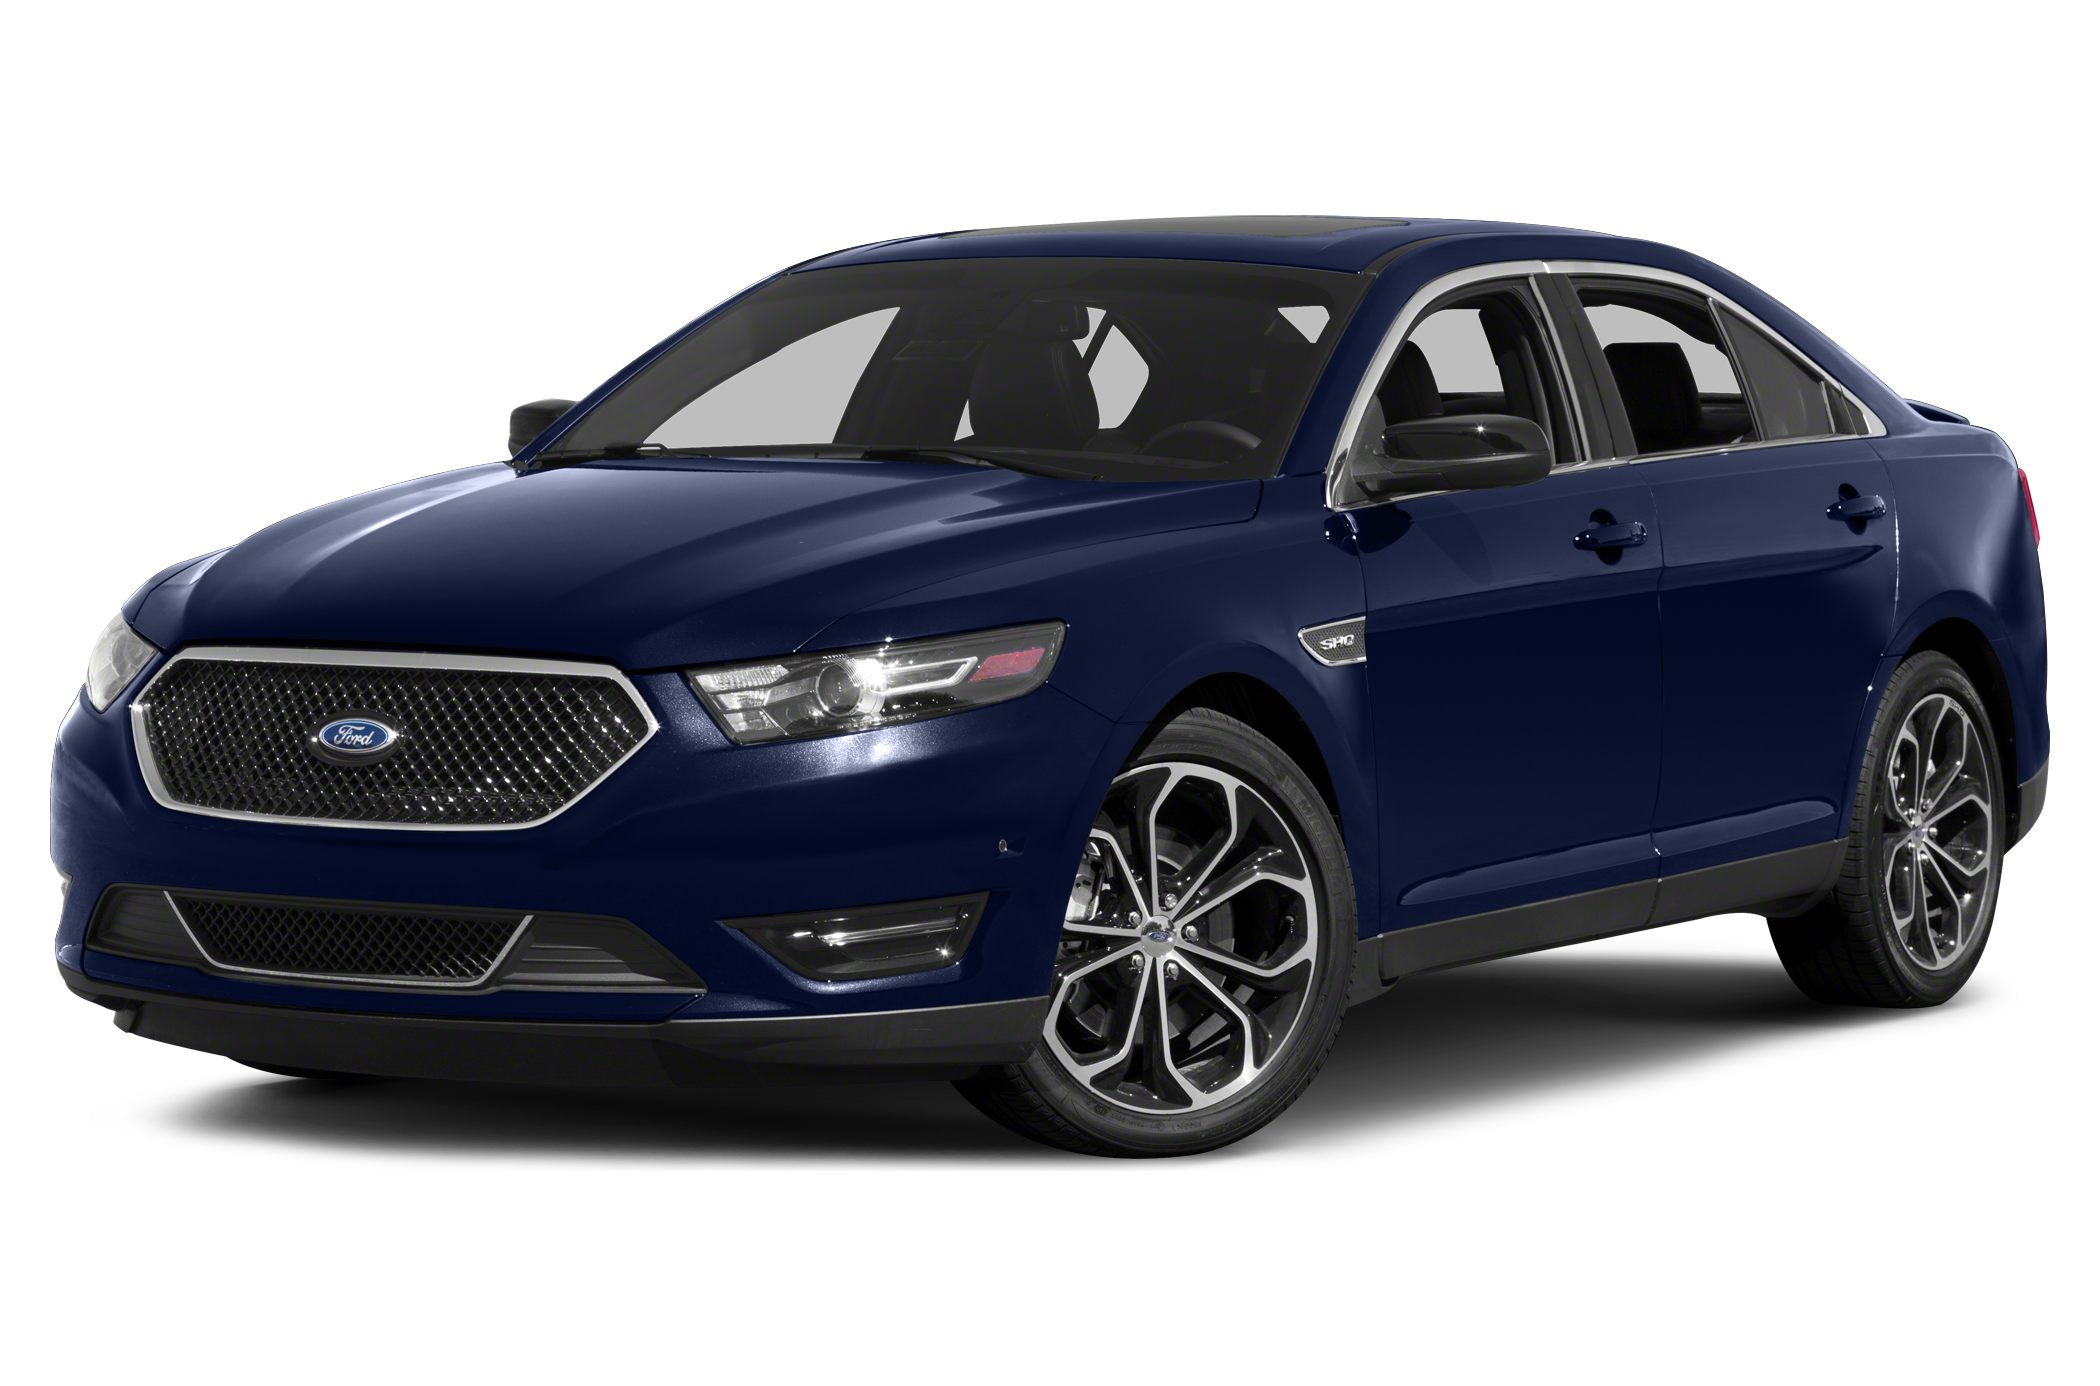 2013 Ford Taurus SHO Sedan for sale in Pittsburgh for $30,000 with 21,847 miles.